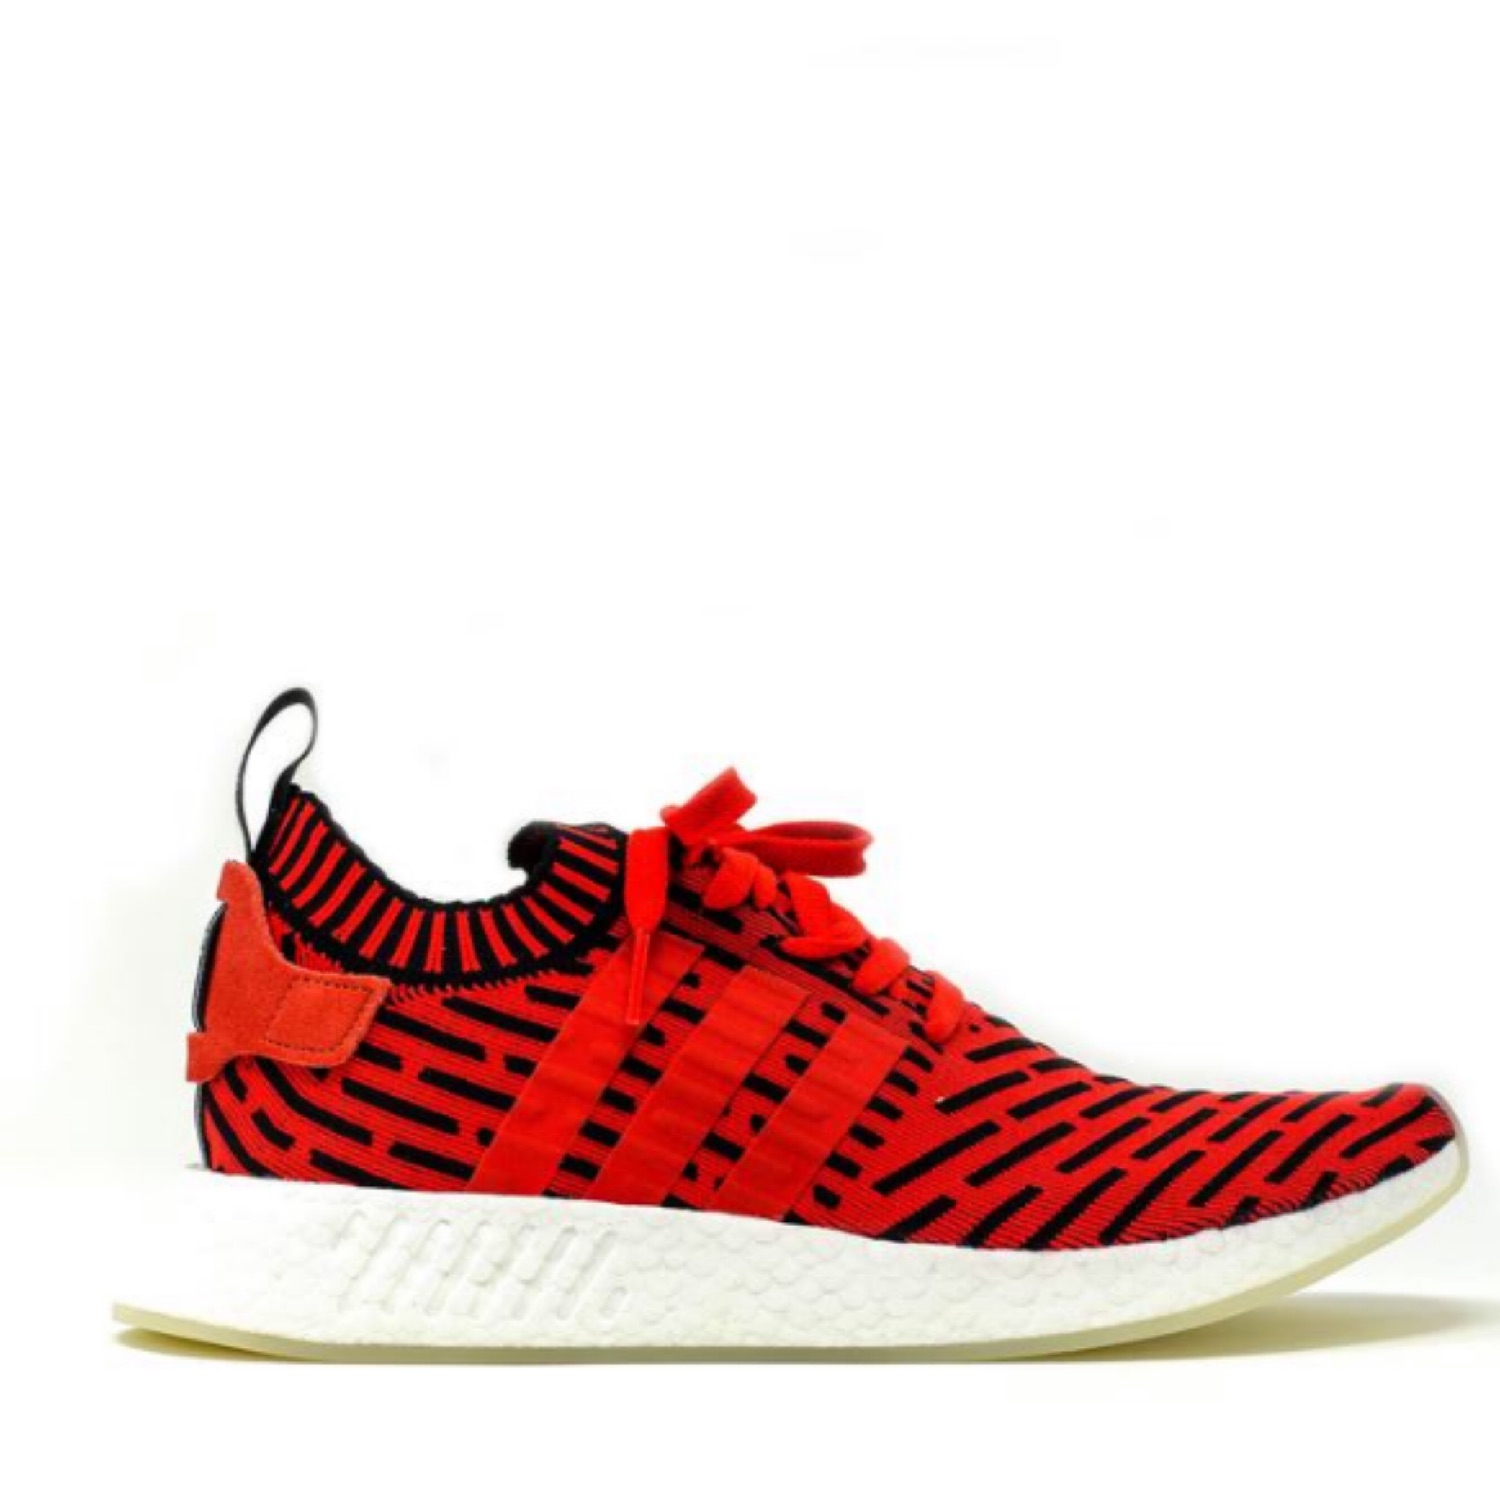 check out a9af6 a036b Adidas Nmd R2 Pk Core Red